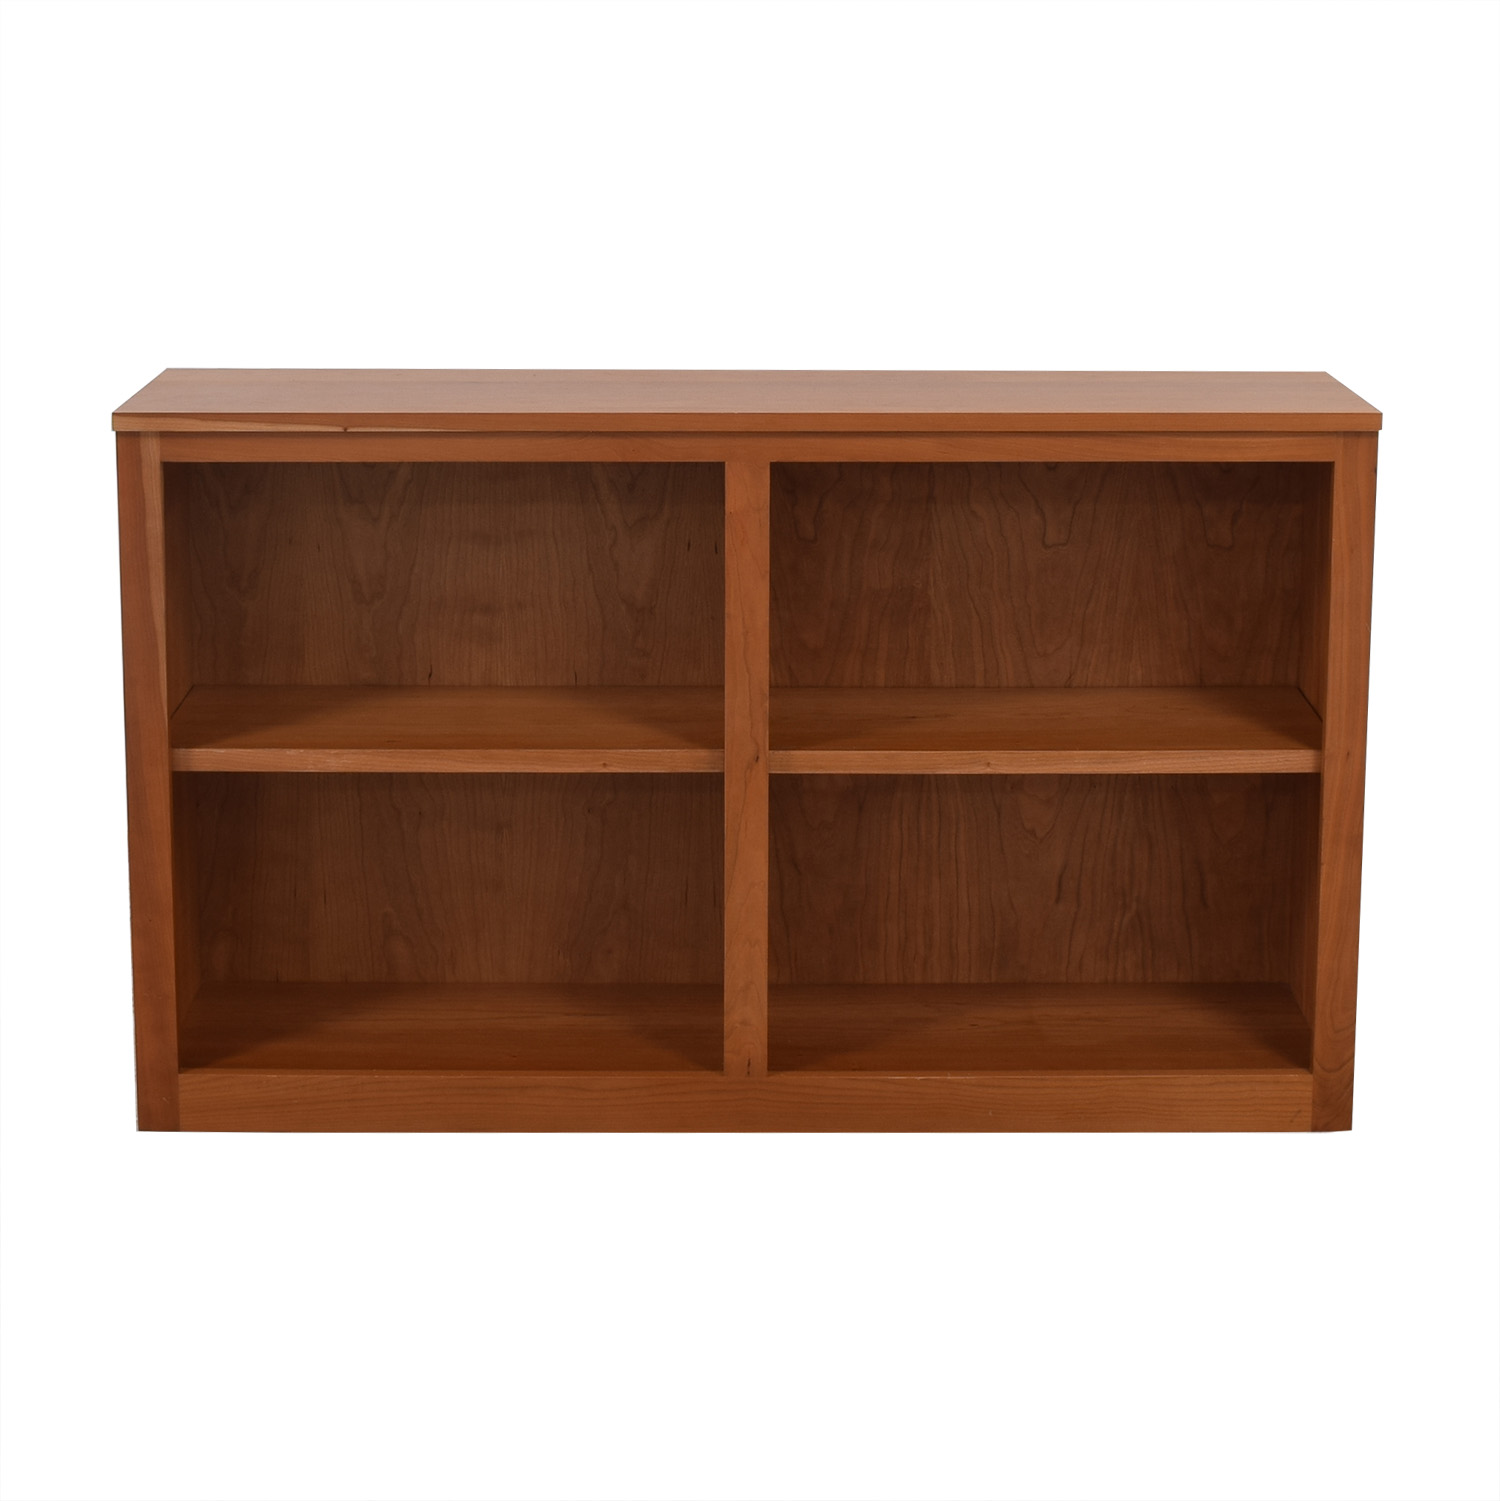 shop Room & Board Room & Board Woodwind Custom Bookshelves online